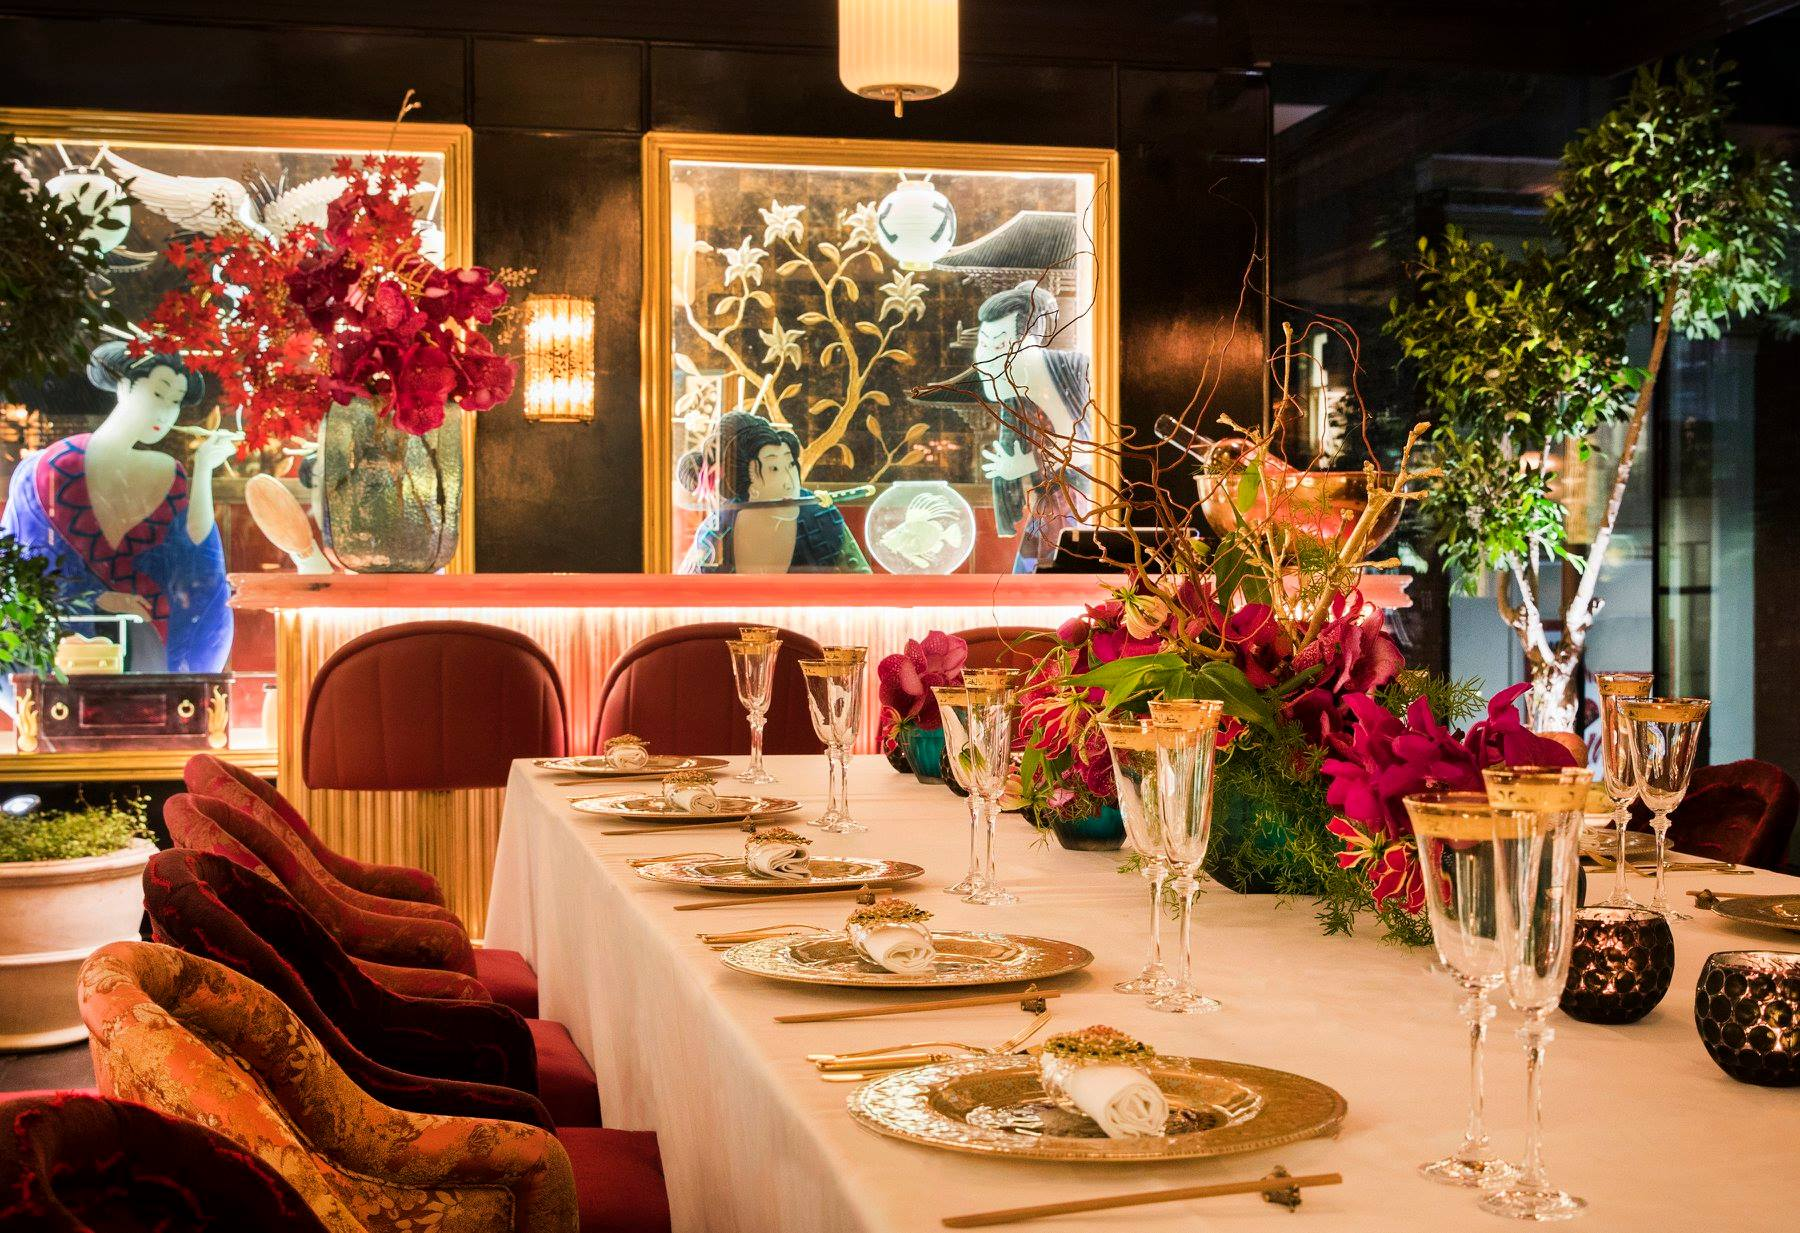 Ivy Asia is Caprice Holdings' restaurant in Spinningfields, Manchester. It will open a second site in London's St Pauls